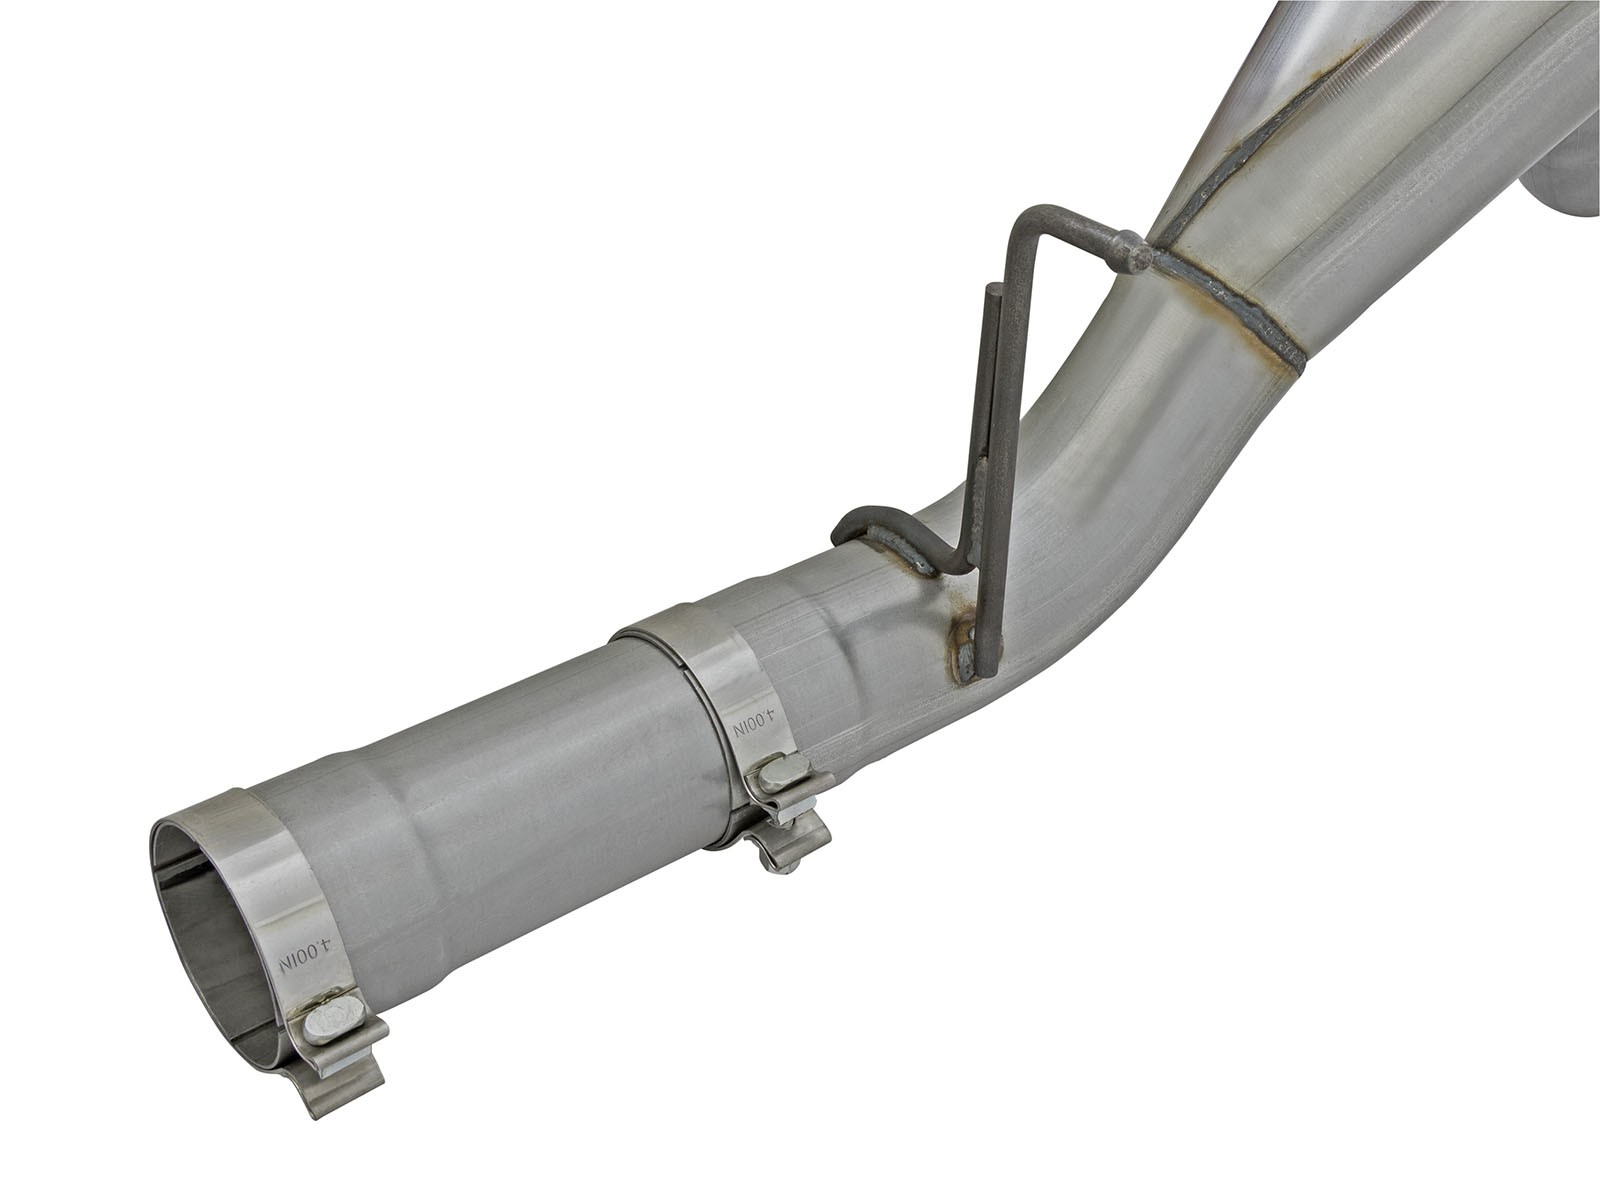 Large Bore Hd 4 Quot 409 Stainless Steel Dpf Back Exhaust